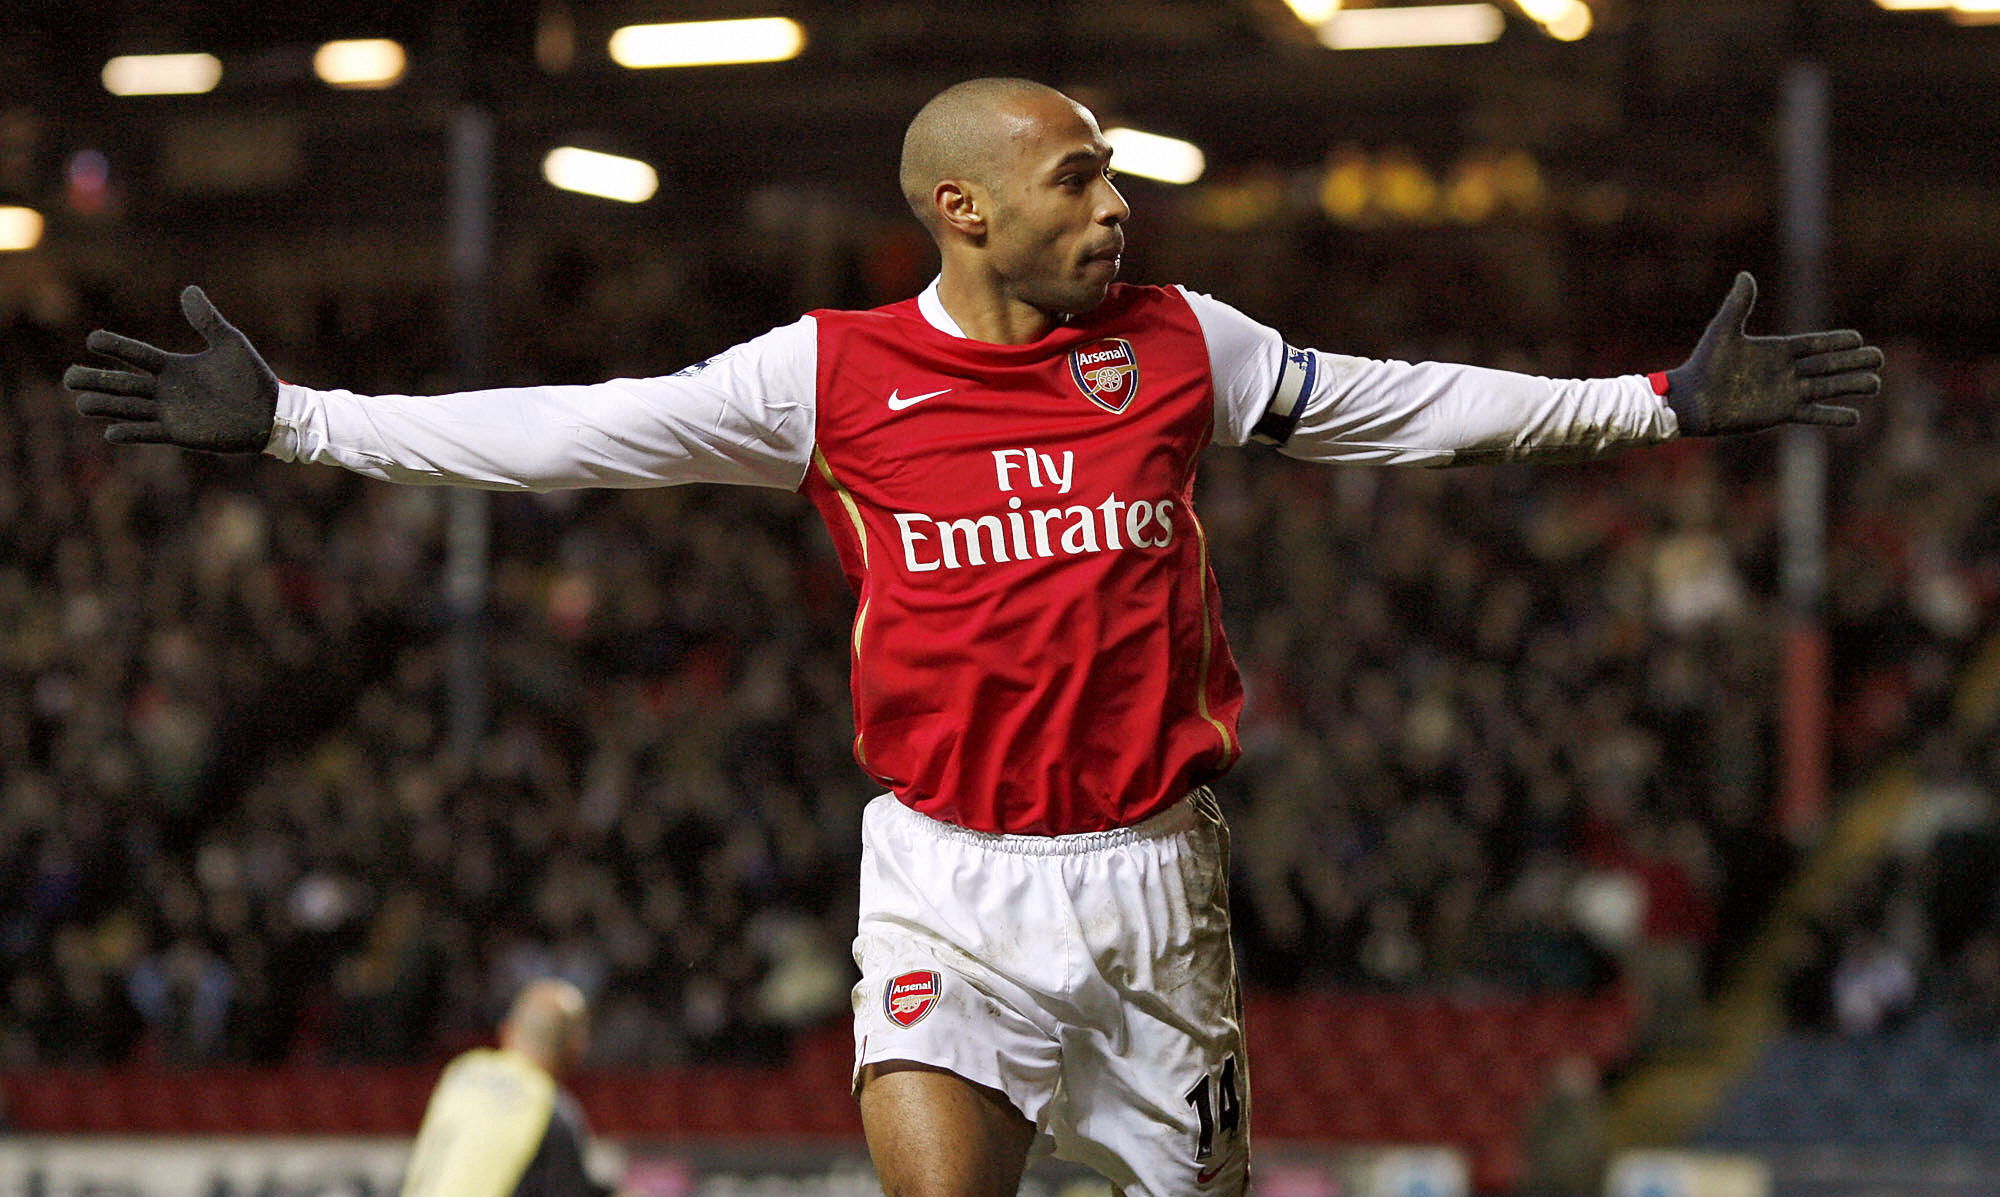 Blackburn, UNITED KINGDOM: Arsenal's Thierry Henry celebrates after scoring during their English Premiership football match against Blackburn Rovers 13 January 2007 at Ewood Park, Blackburn, North-west England. AFP PHOTO/ANDREW YATES Mobile and website use of domestic English football pictures subject to subscription of a license with Football Association Premier League (FAPL) tel : +44 207 298 1656. For newspapers where the football content of the printed and electronic versions are identical, no licence is necessary. (Photo credit should read ANDREW YATES/AFP/Getty Images)